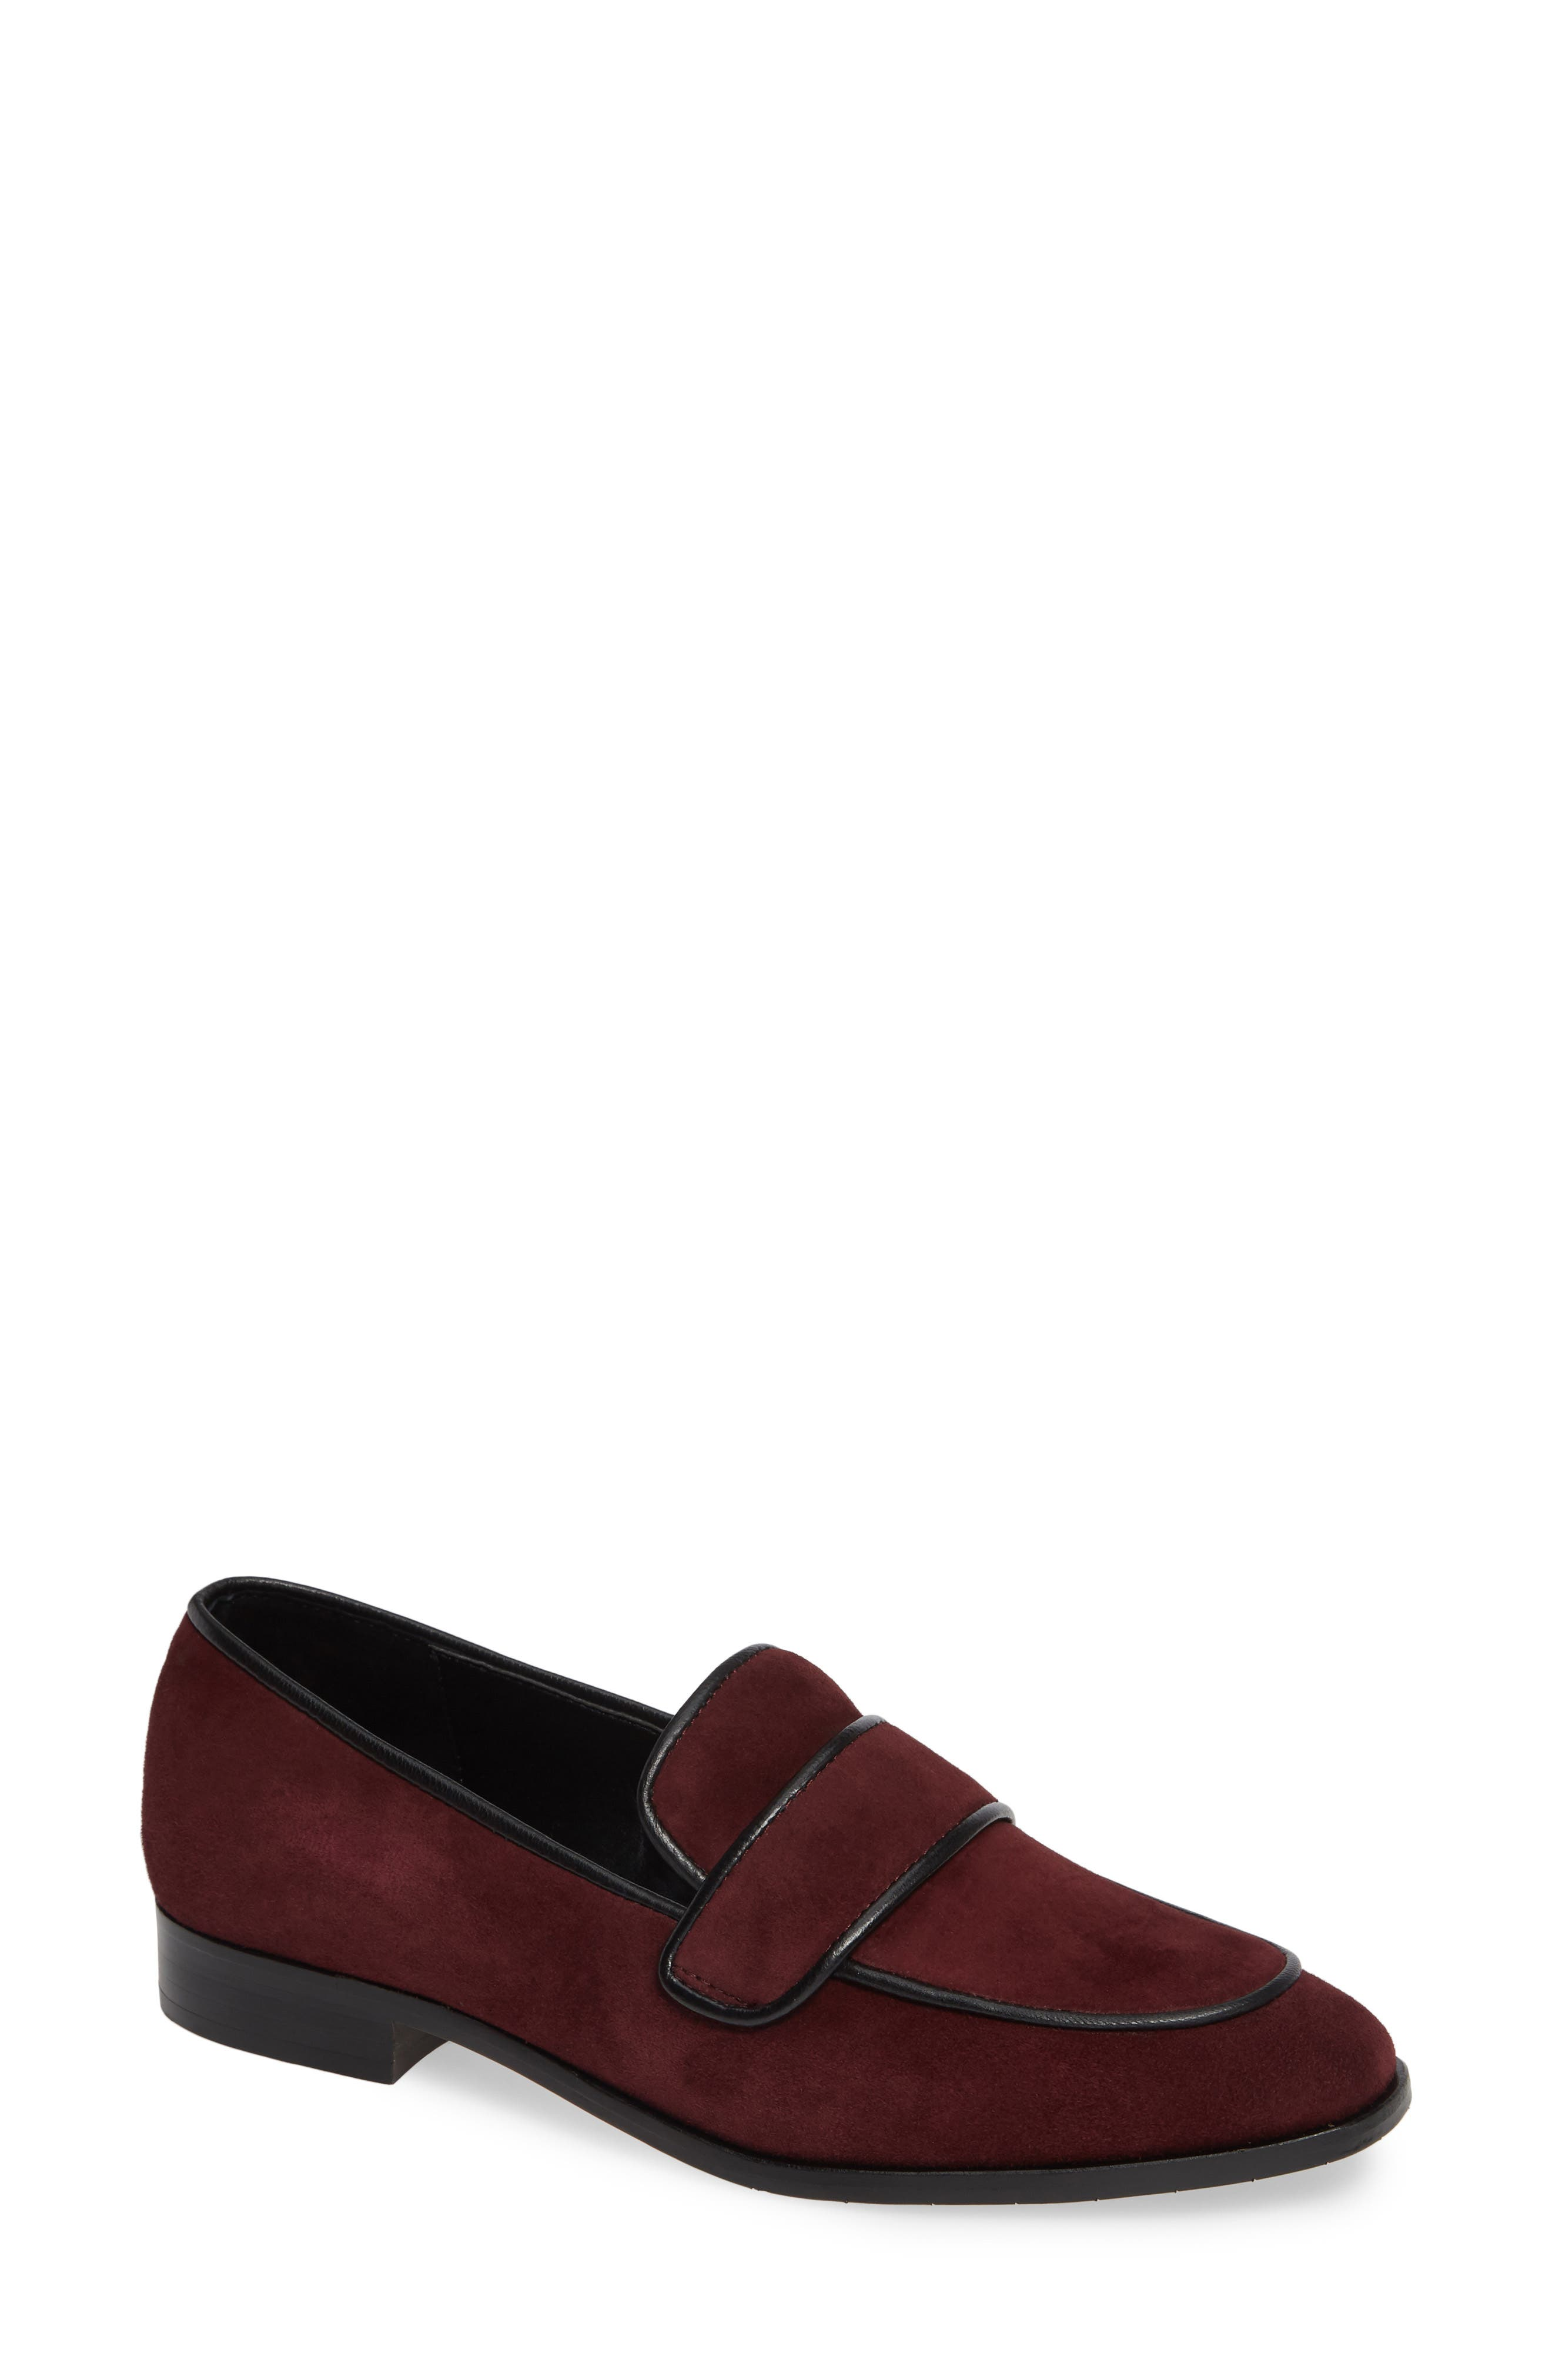 Loretta Loafer in Plum Suede